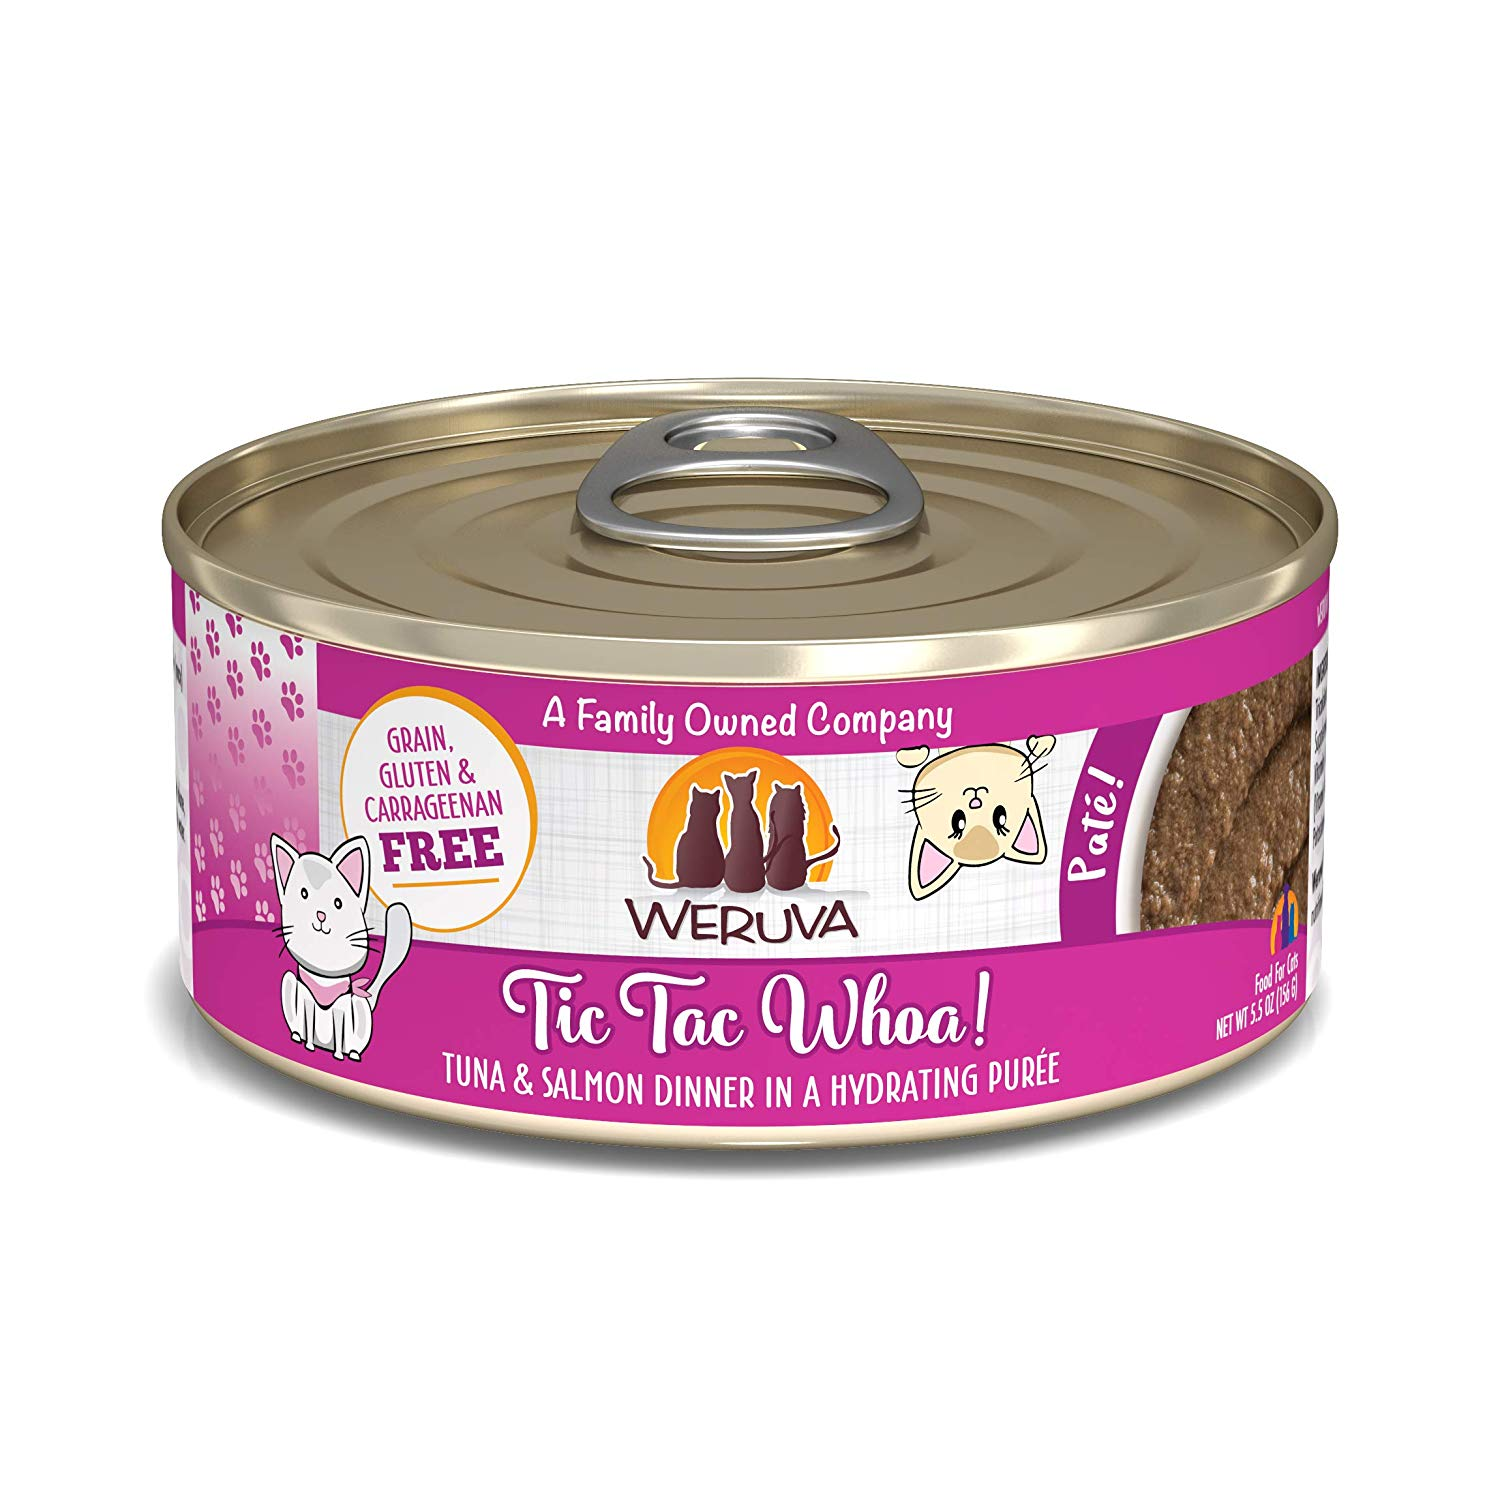 Weruva Cat Pate Tic Tac Whoa! Tuna & Salmon Dinner in Puree Wet Cat Food, 5.5-oz can